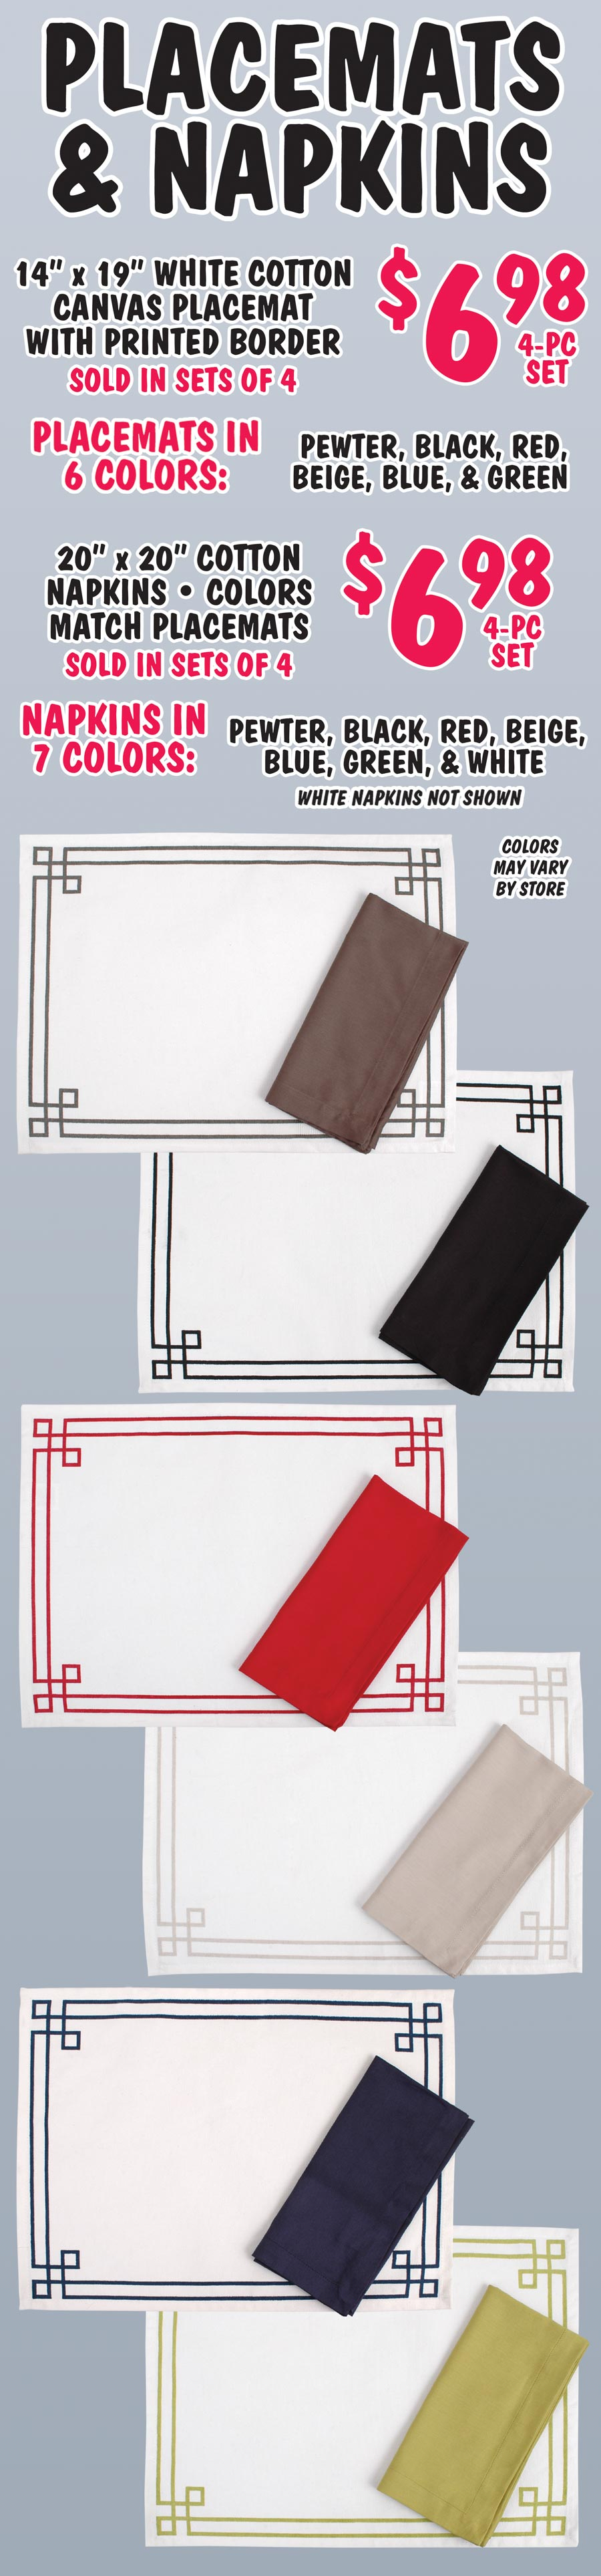 Cotton Placemats and Matching Napkins - your choice $6.98 for a set of 4